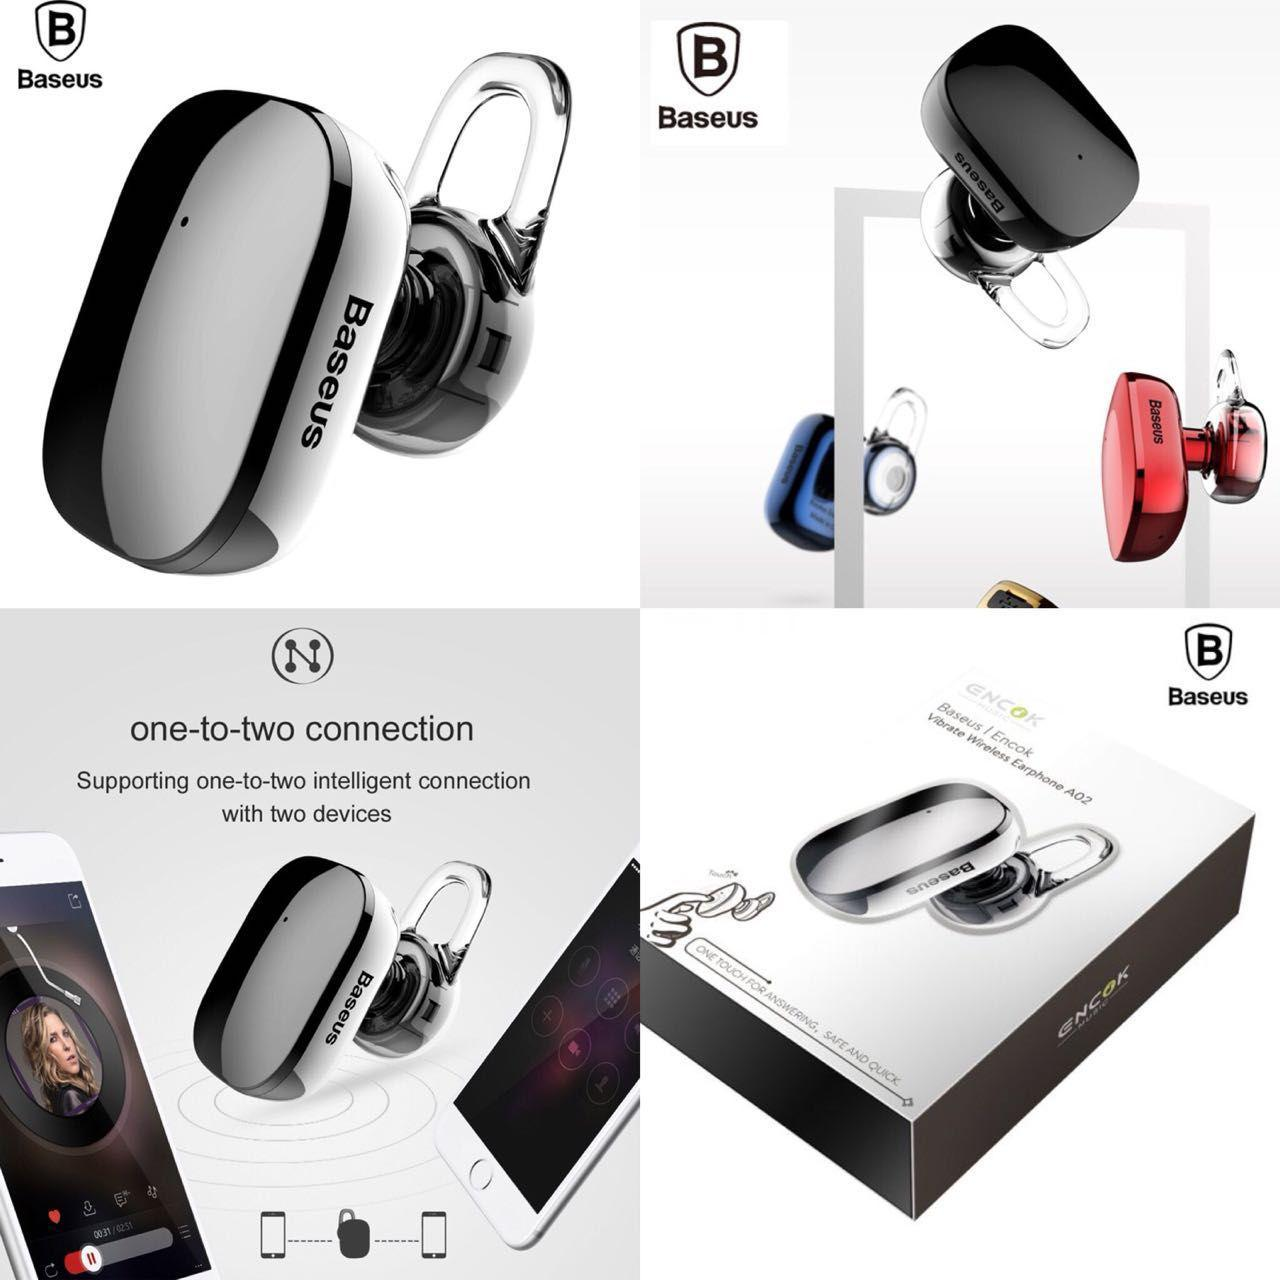 eedc65cd461 Bluetooth Earphone,Baseus A02 Wireless Bluetooth Earbud with Microphone  Hand Free Calling and In-